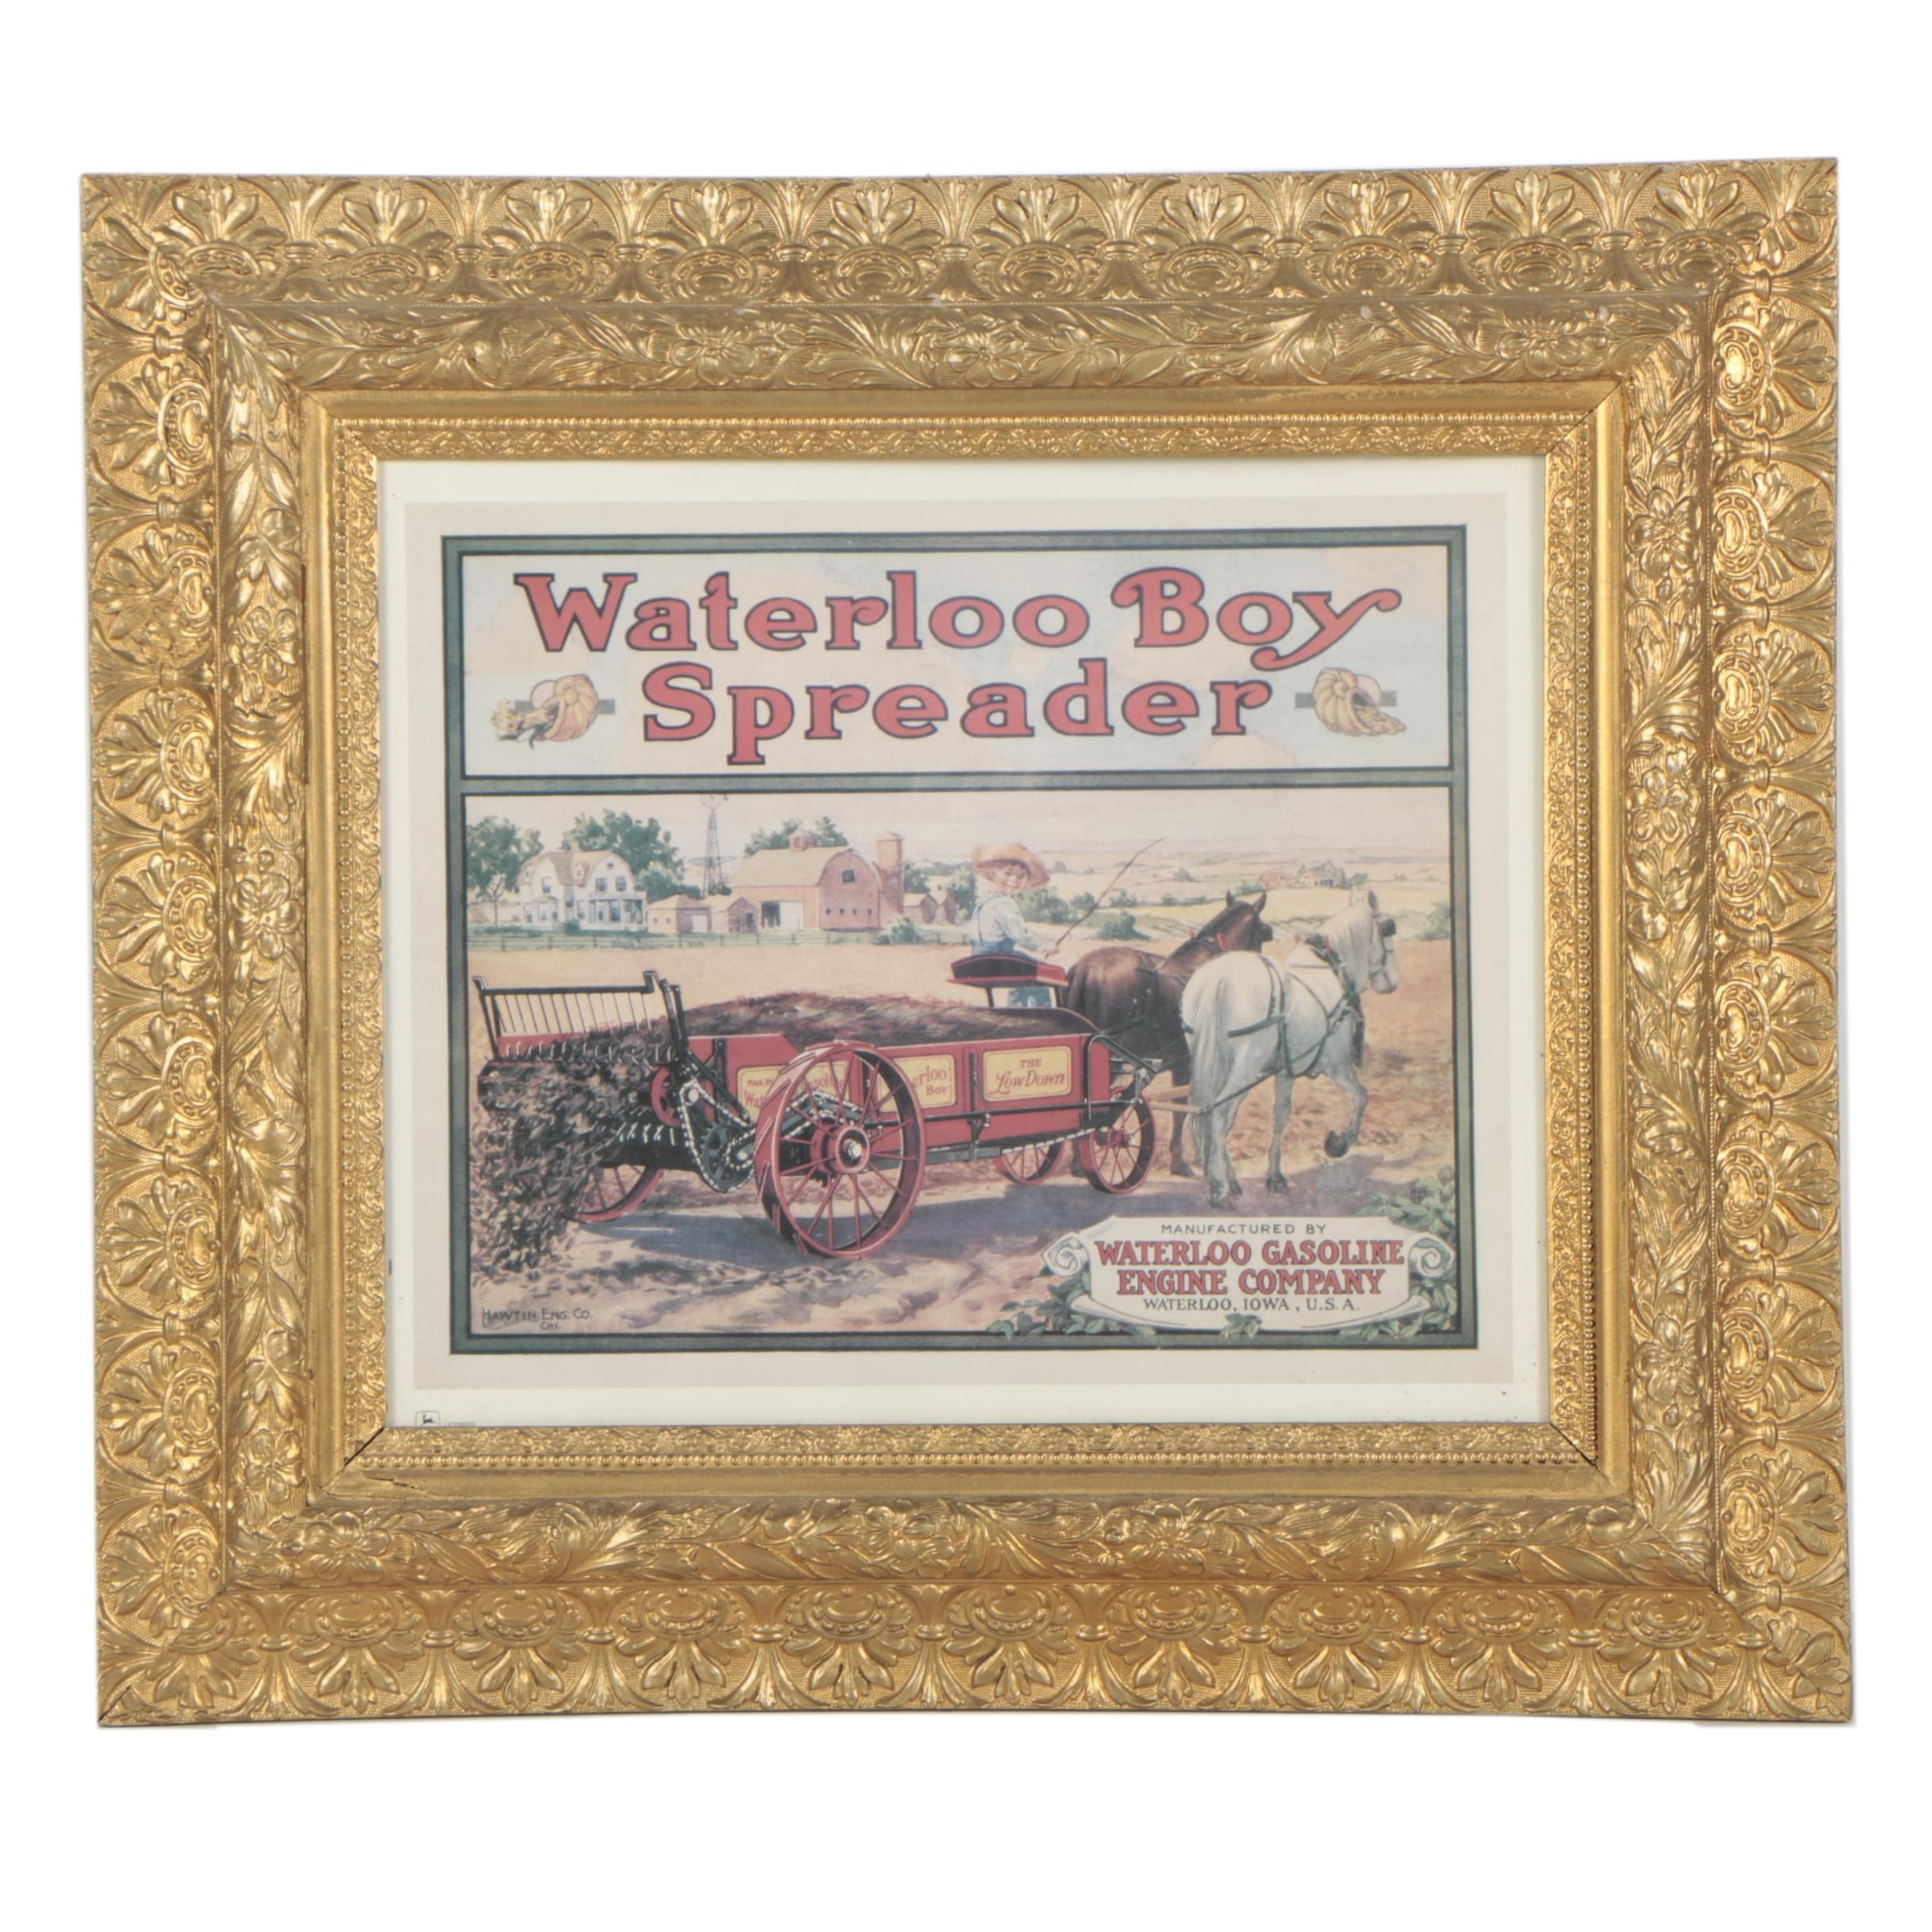 Offset Lithograph After Circa 1920 Waterloo Gasoline Company Advertisement